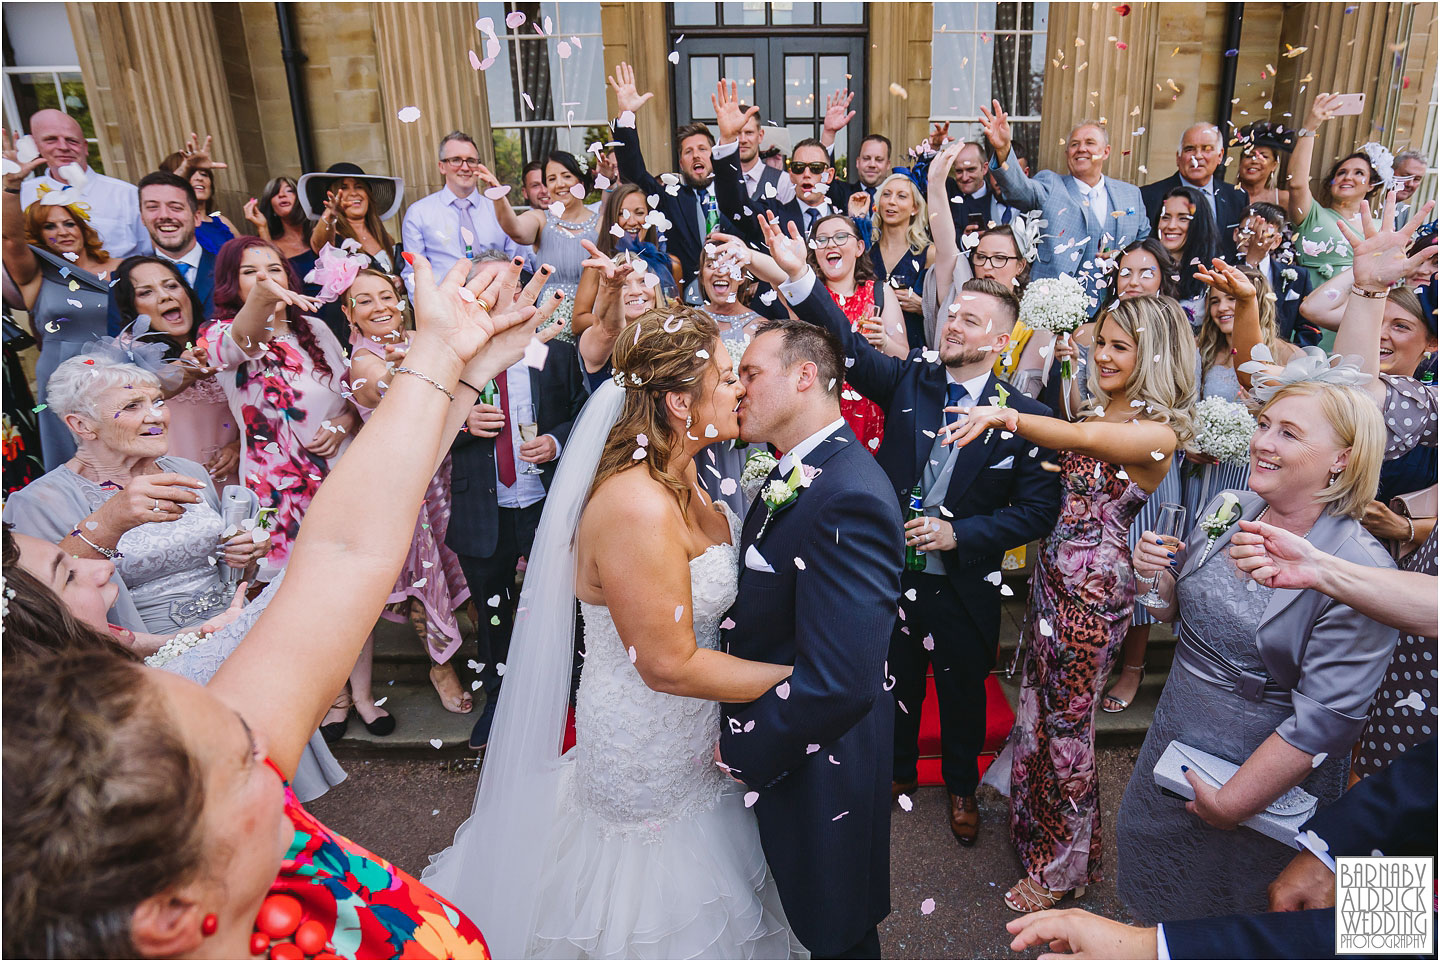 Oulton Hall Confetti, Summer wedding photo at Oulton Hall, Leeds wedding venues, West Yorkshire wedding hotels